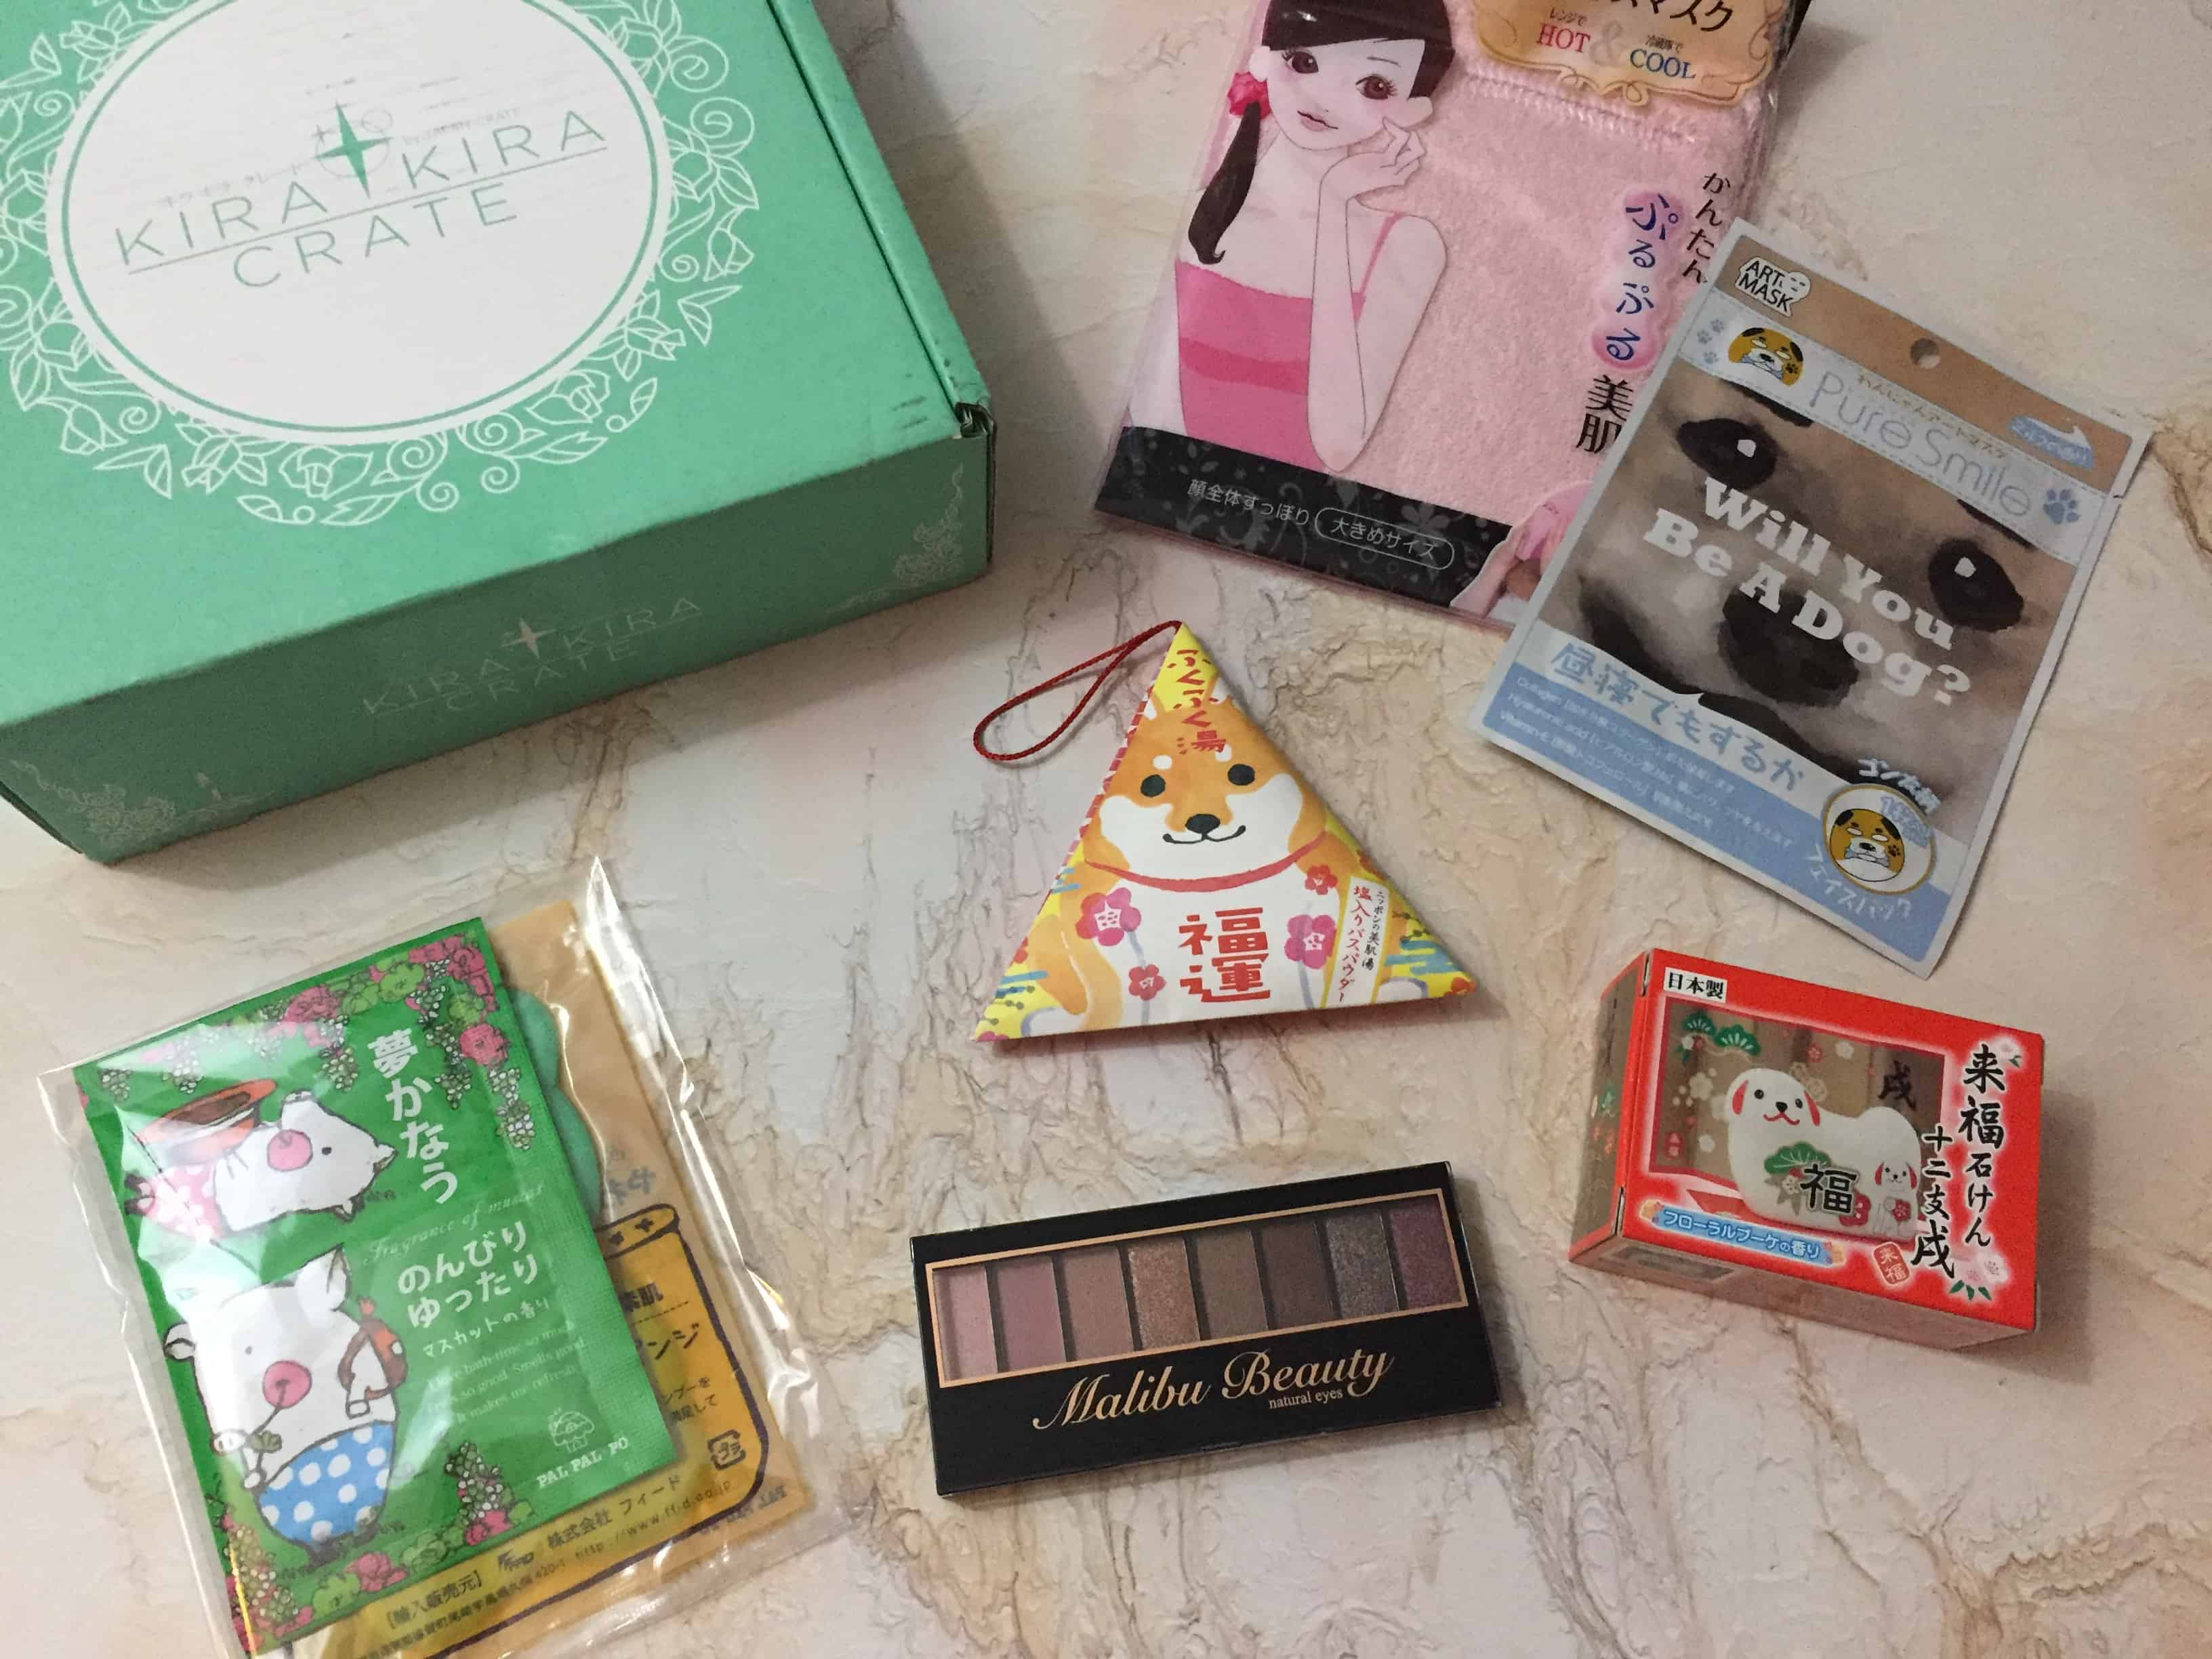 Kira Kira Crate January 2018 Subscription Box Review + Coupon